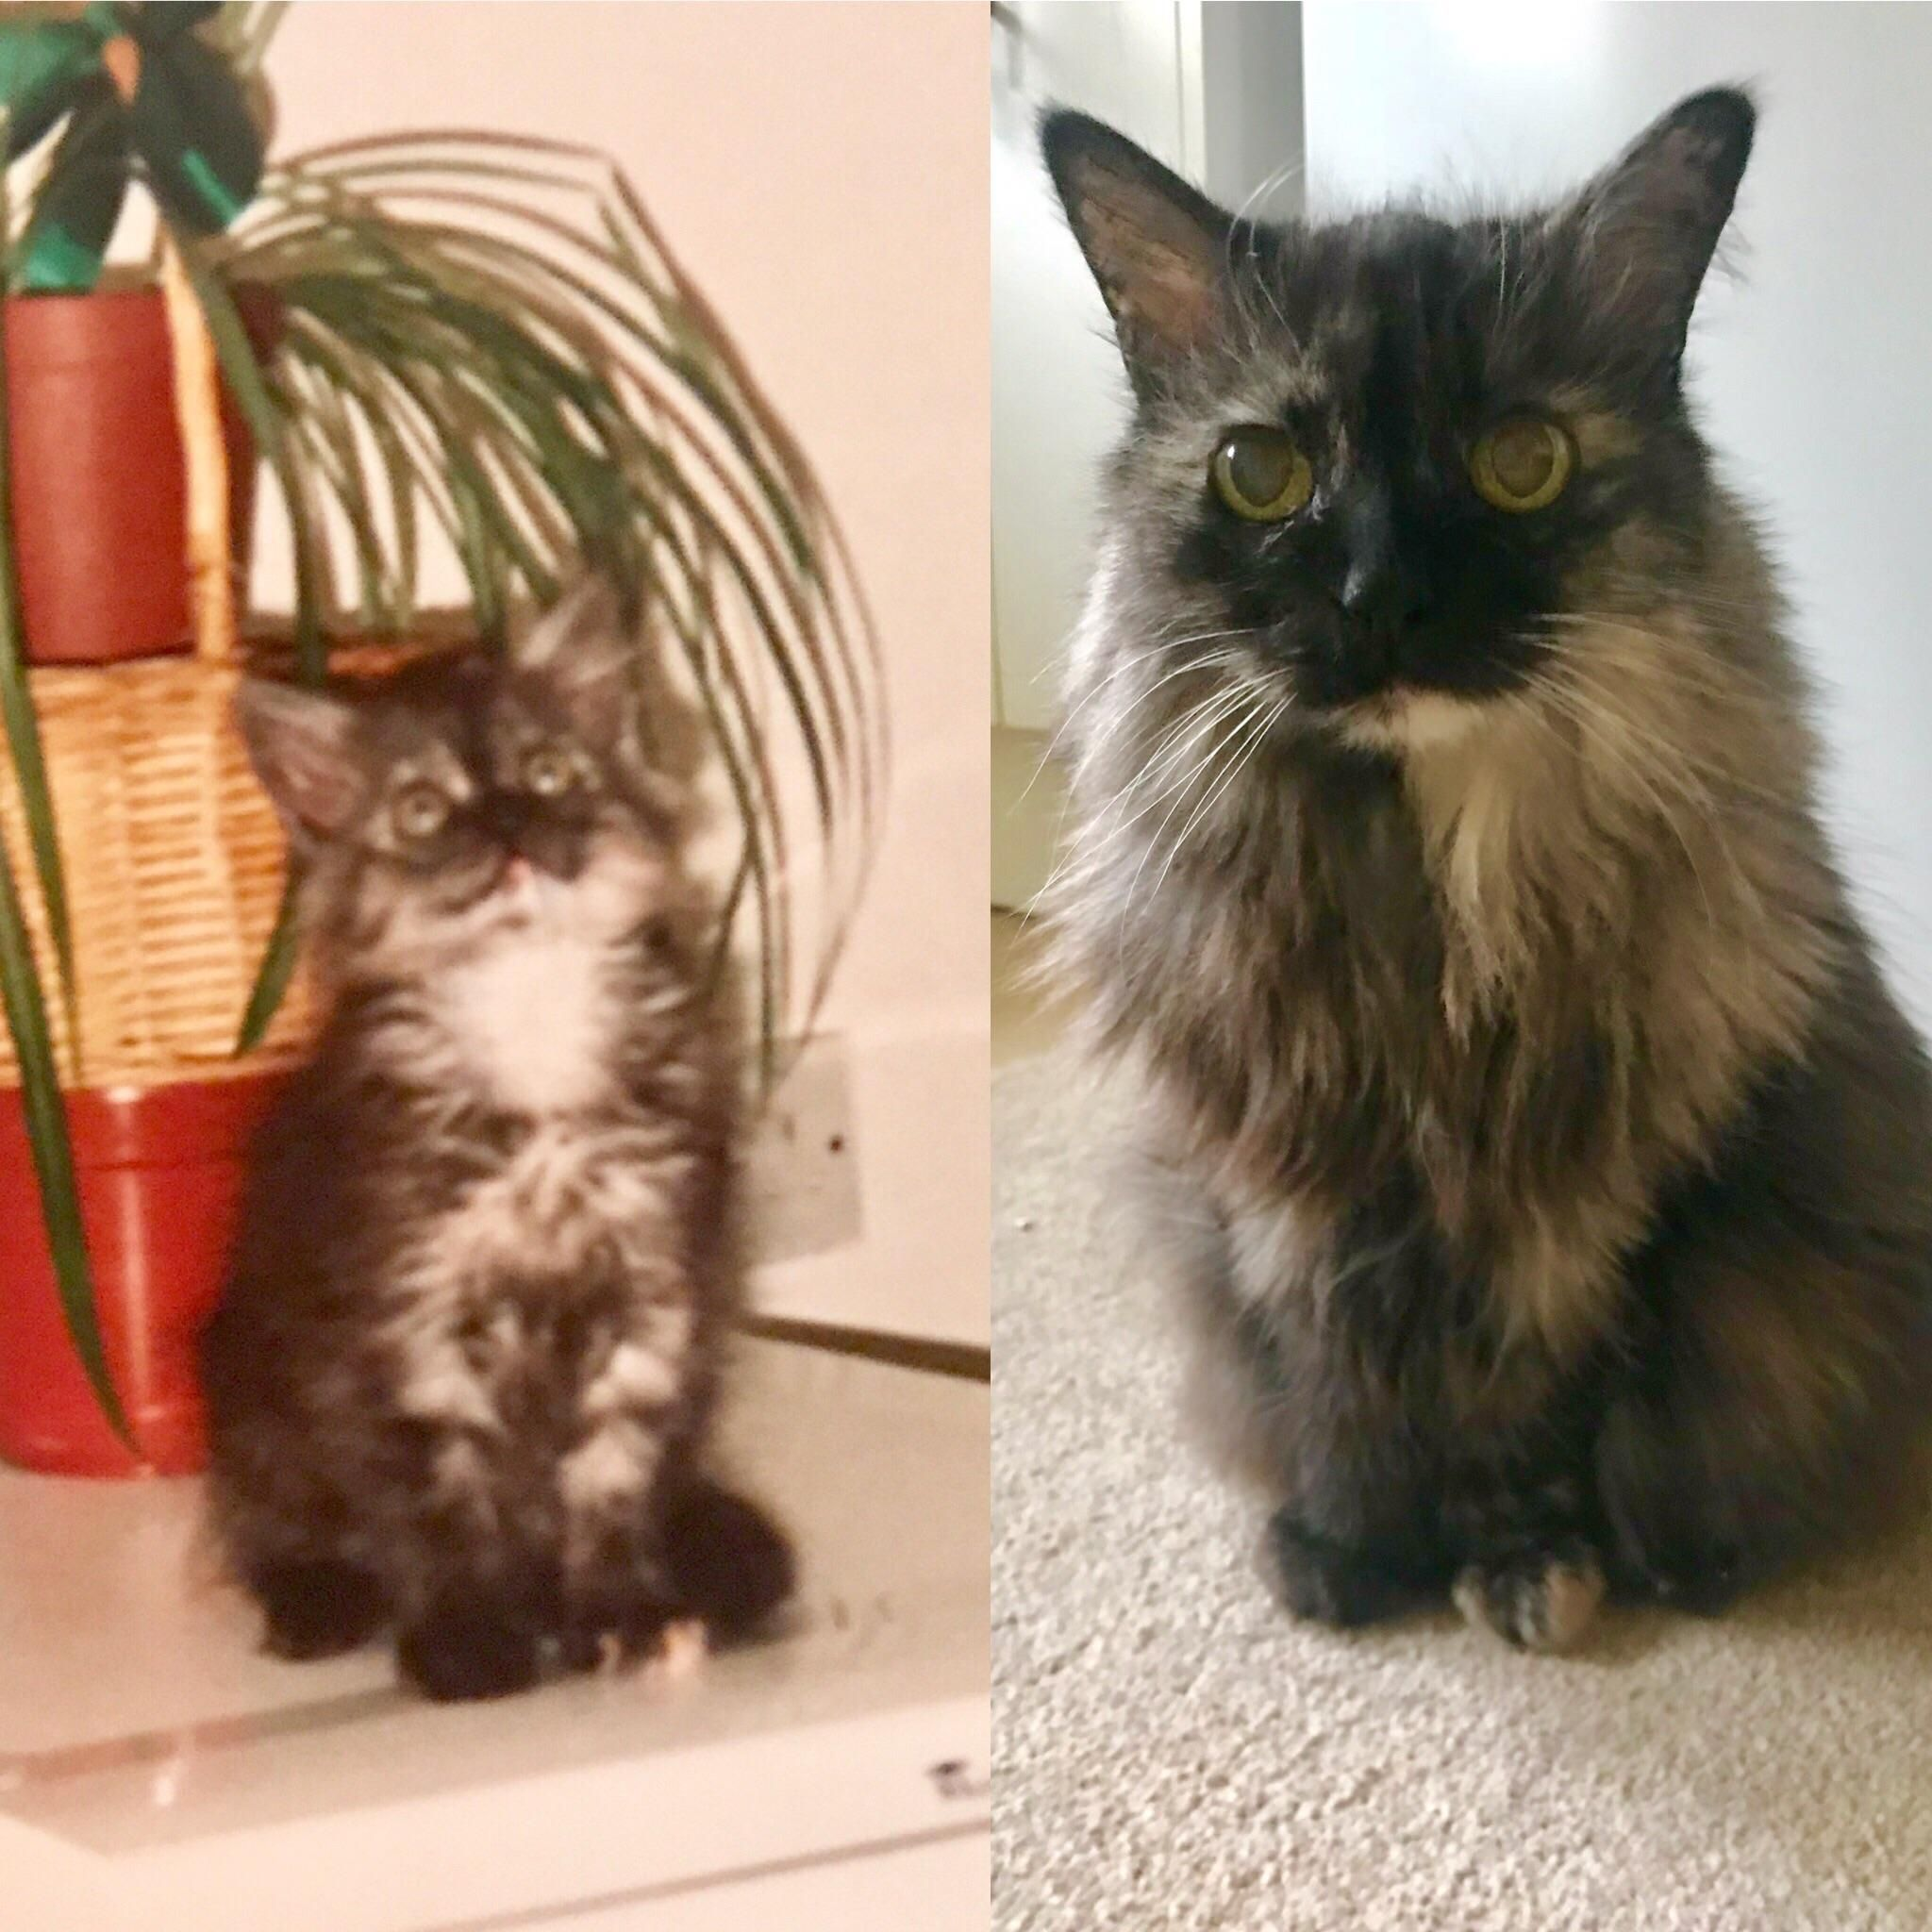 My Cat Is Now 20 Years Old Here Is A Pic Of Her As A Kitten Around A Few Months Old And Now She Has Always Been Tiny For Her Age Http